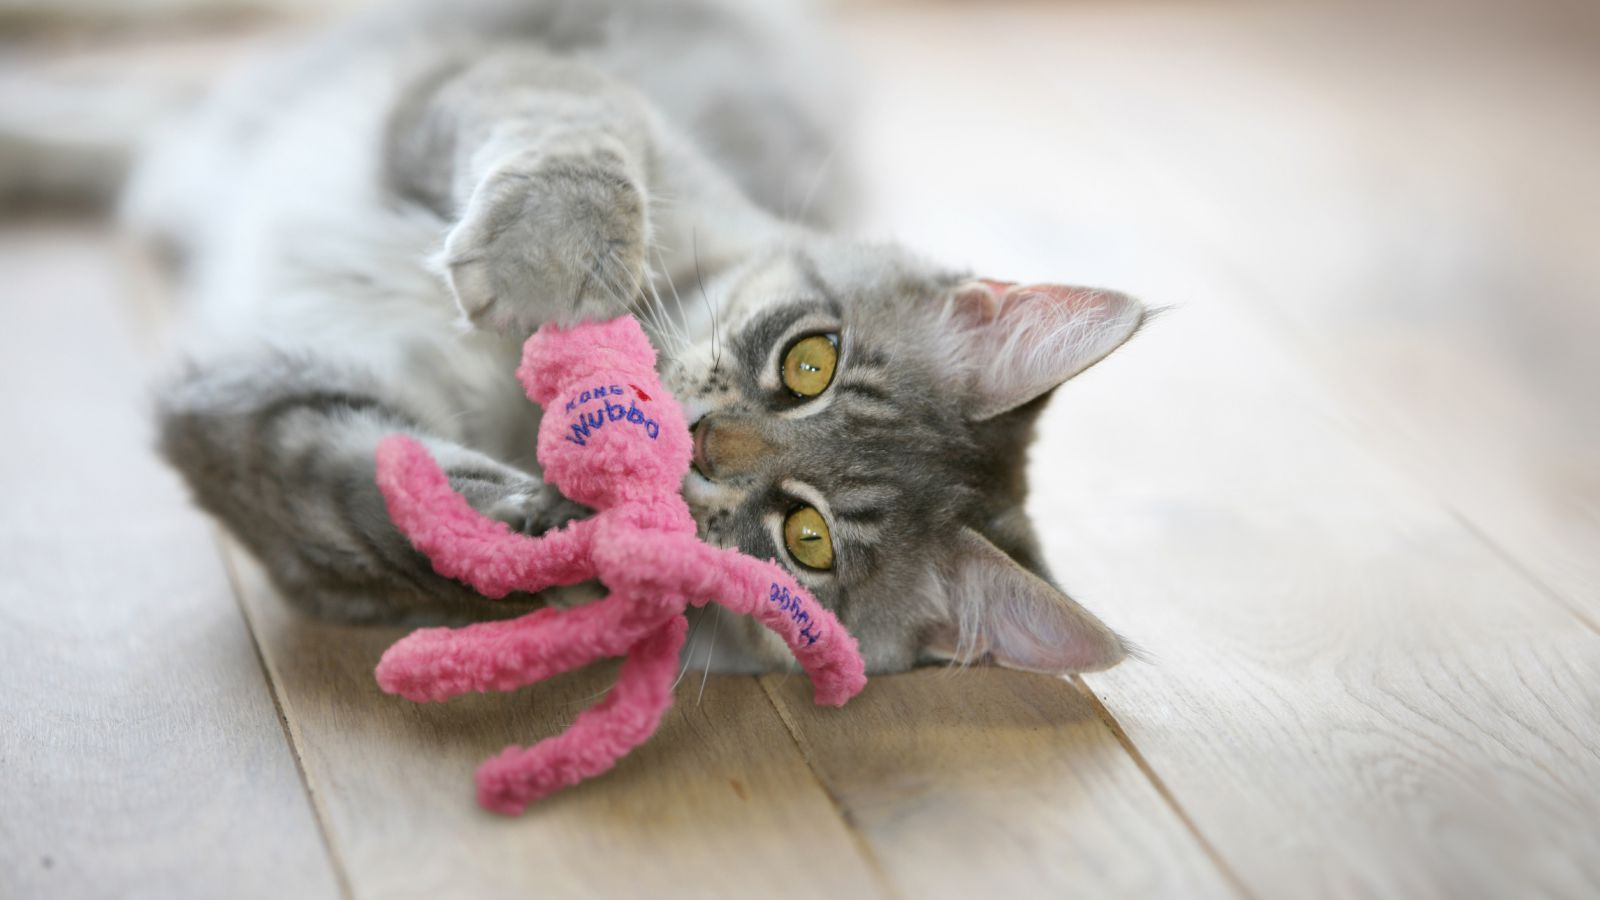 KONG Wubba catnip toy for cats